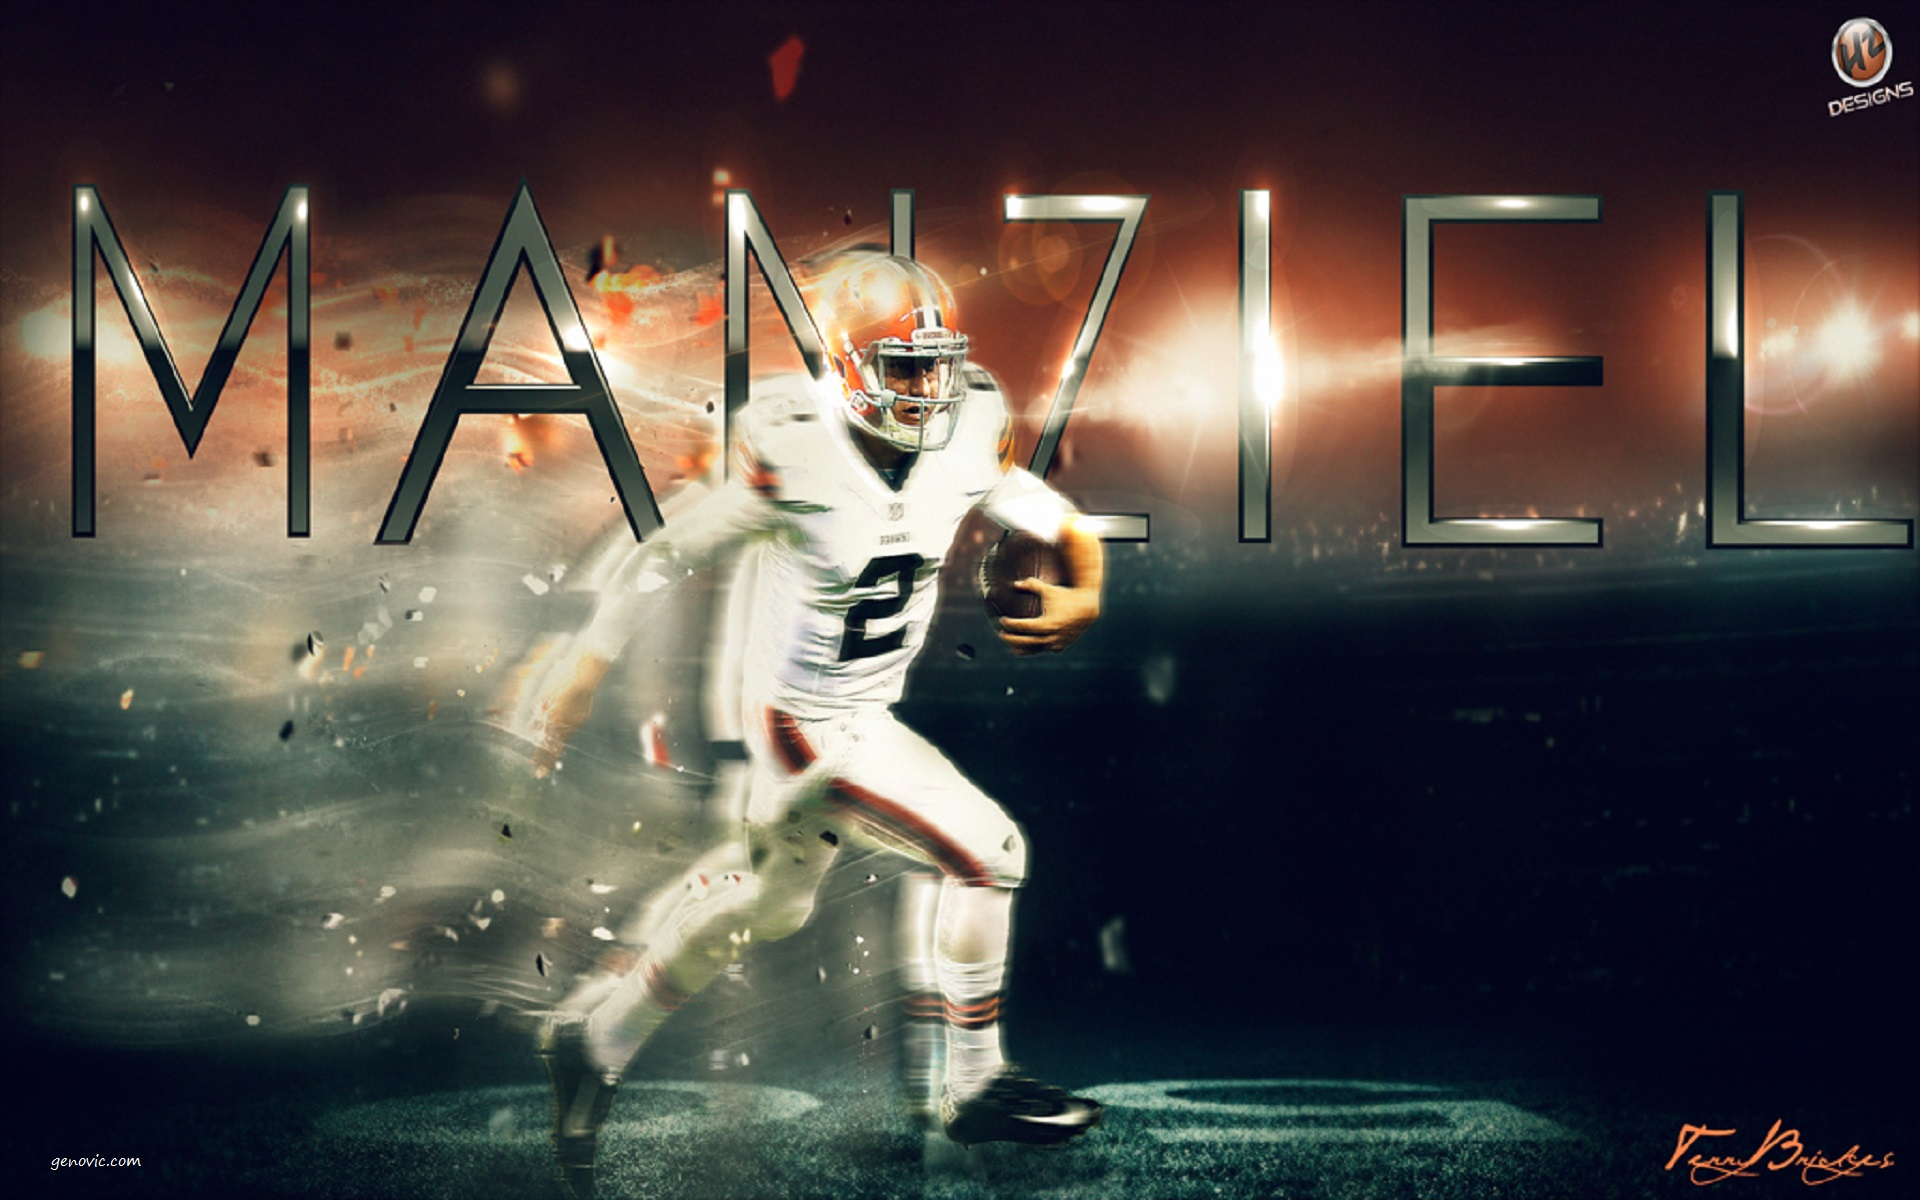 Wonderful Johnny Manziel Wallpaper